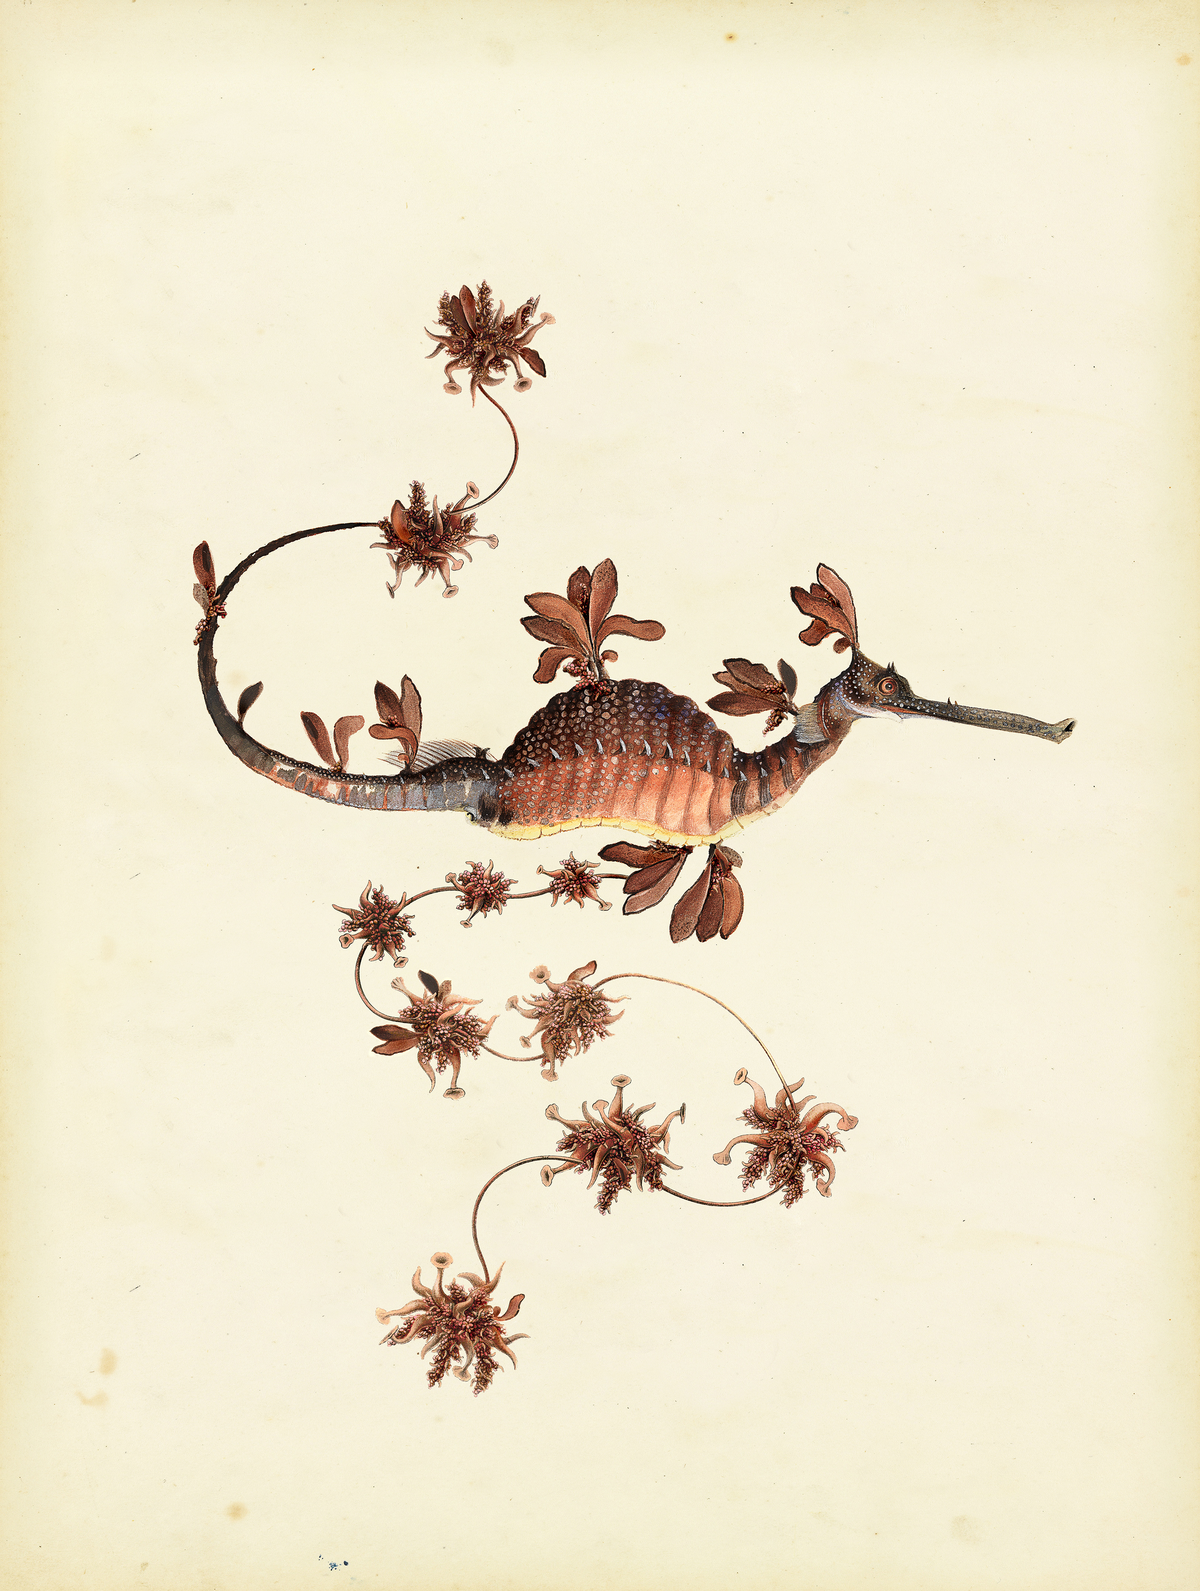 Drawing of the Extinct Animal Blooming Seadragon.